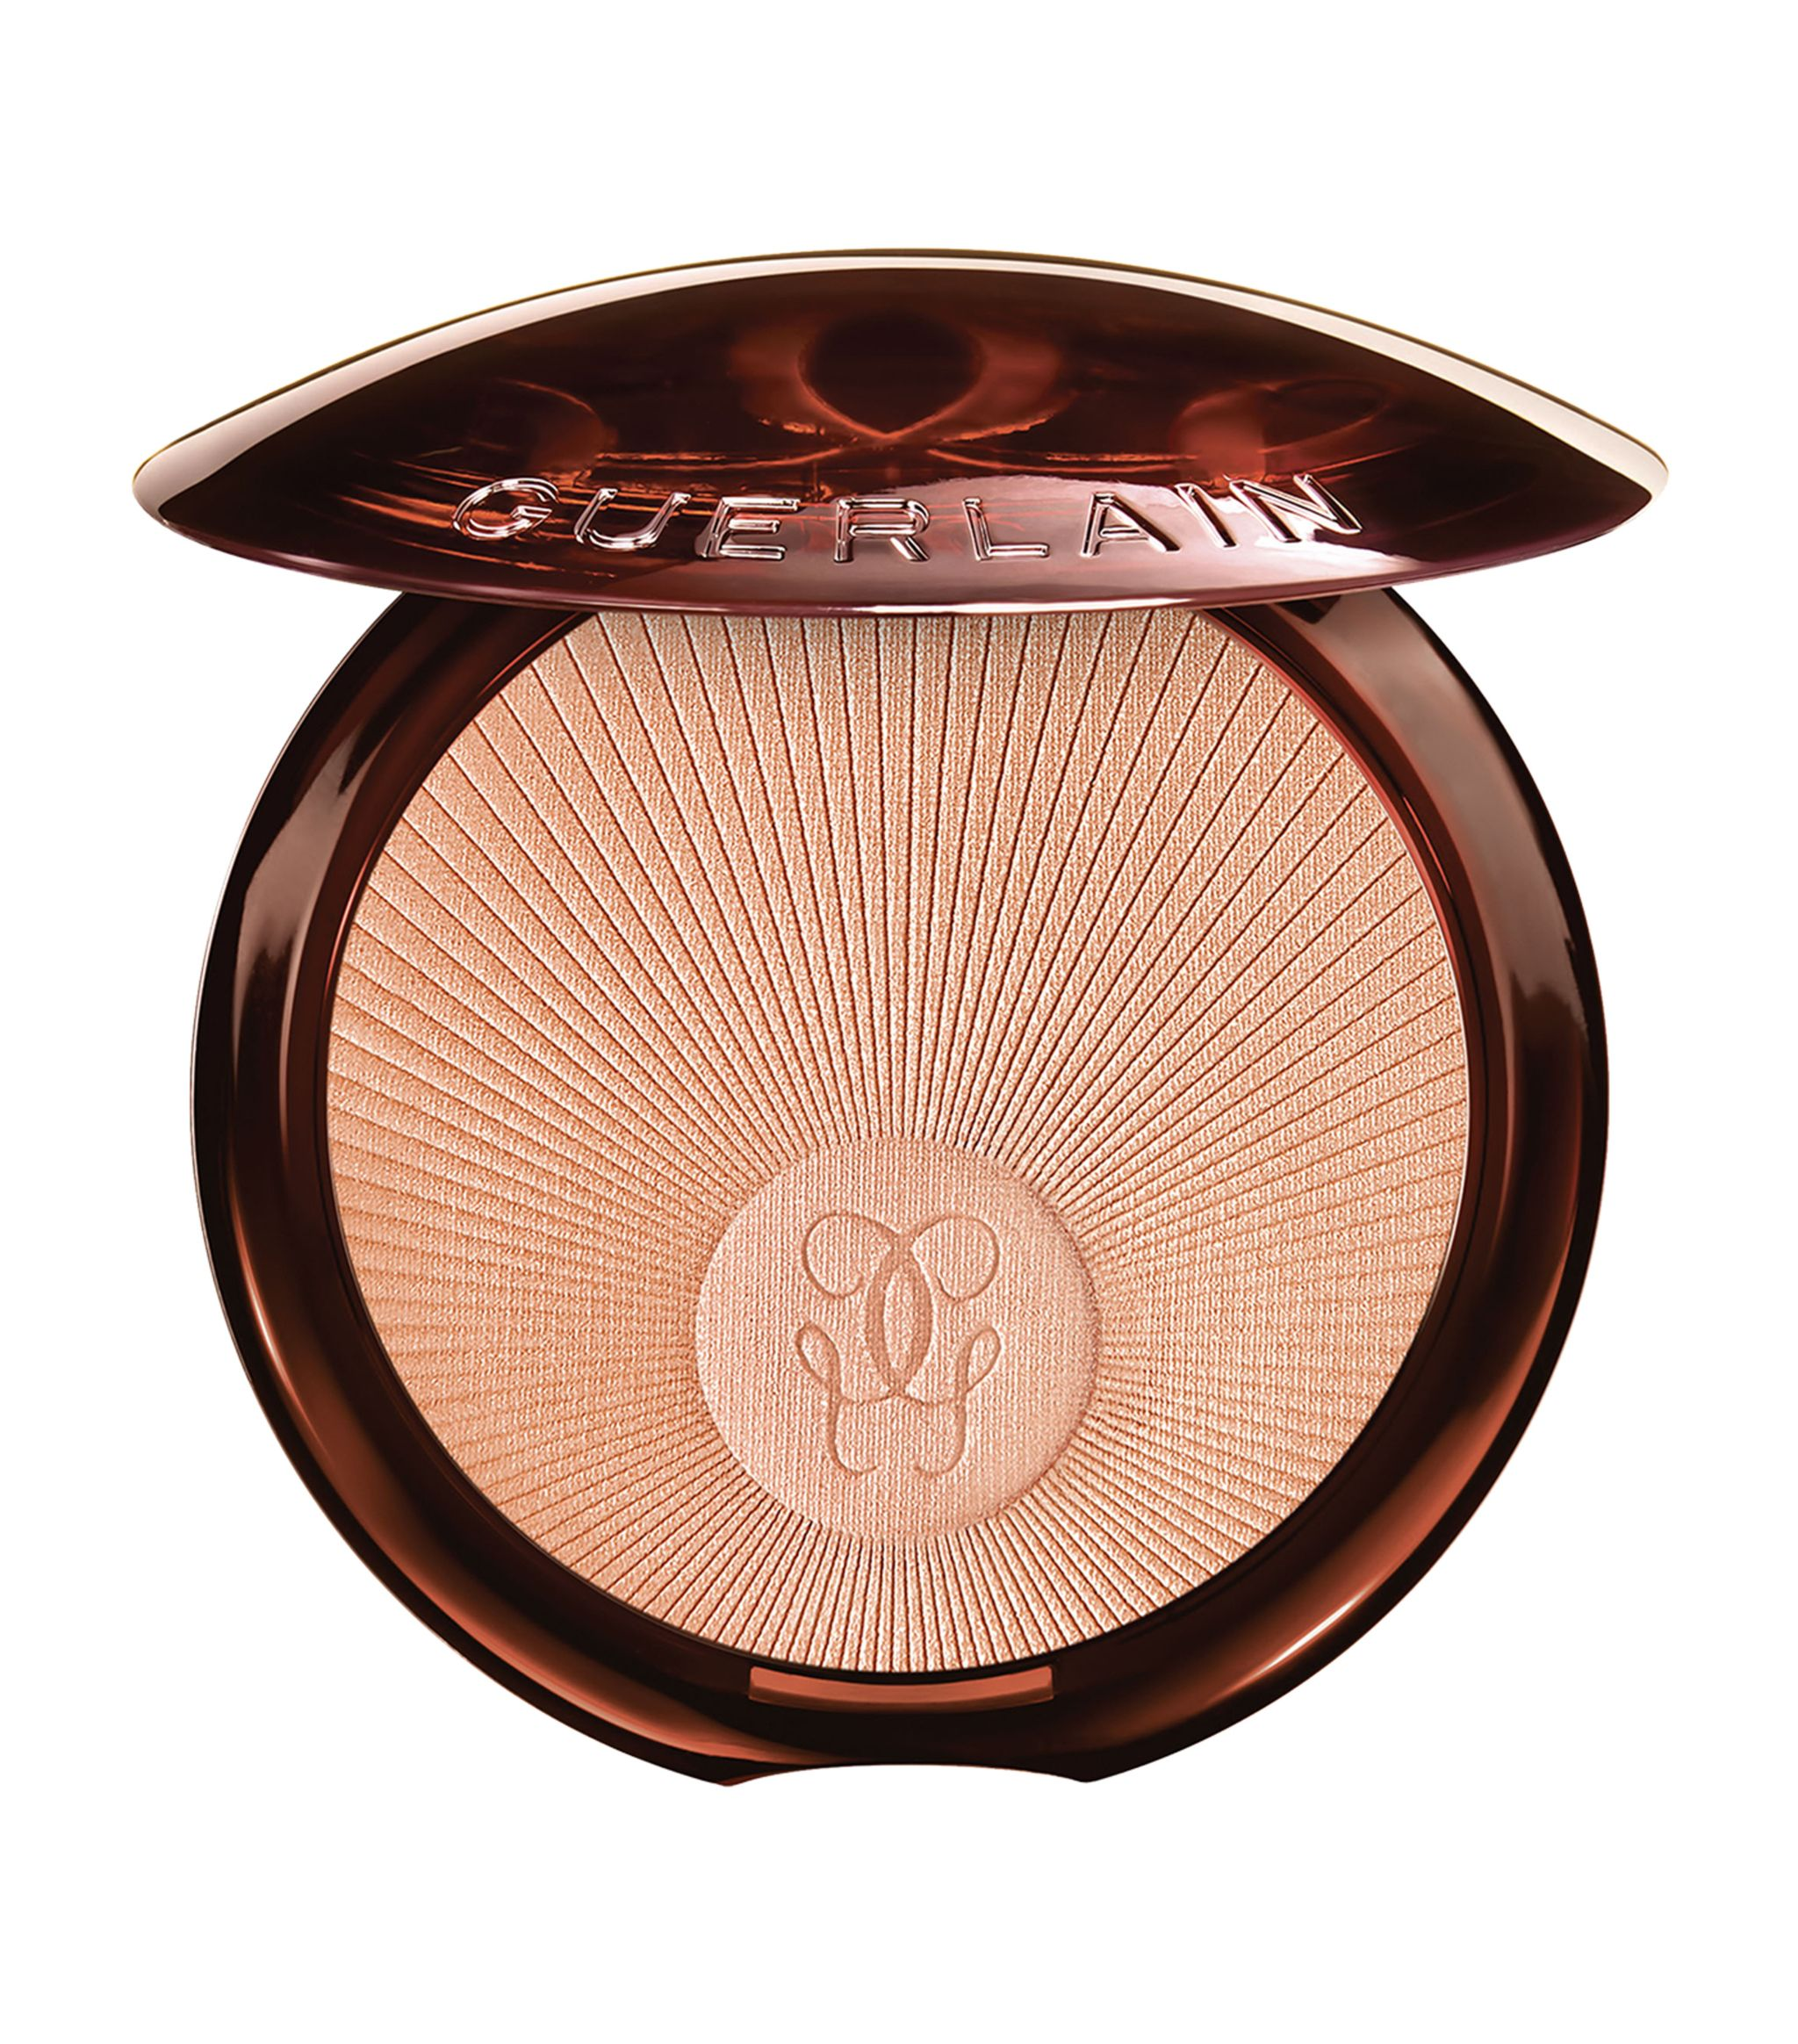 Nude Look Guerlain Terracotta Nude Glow Powder | Harrods Uk